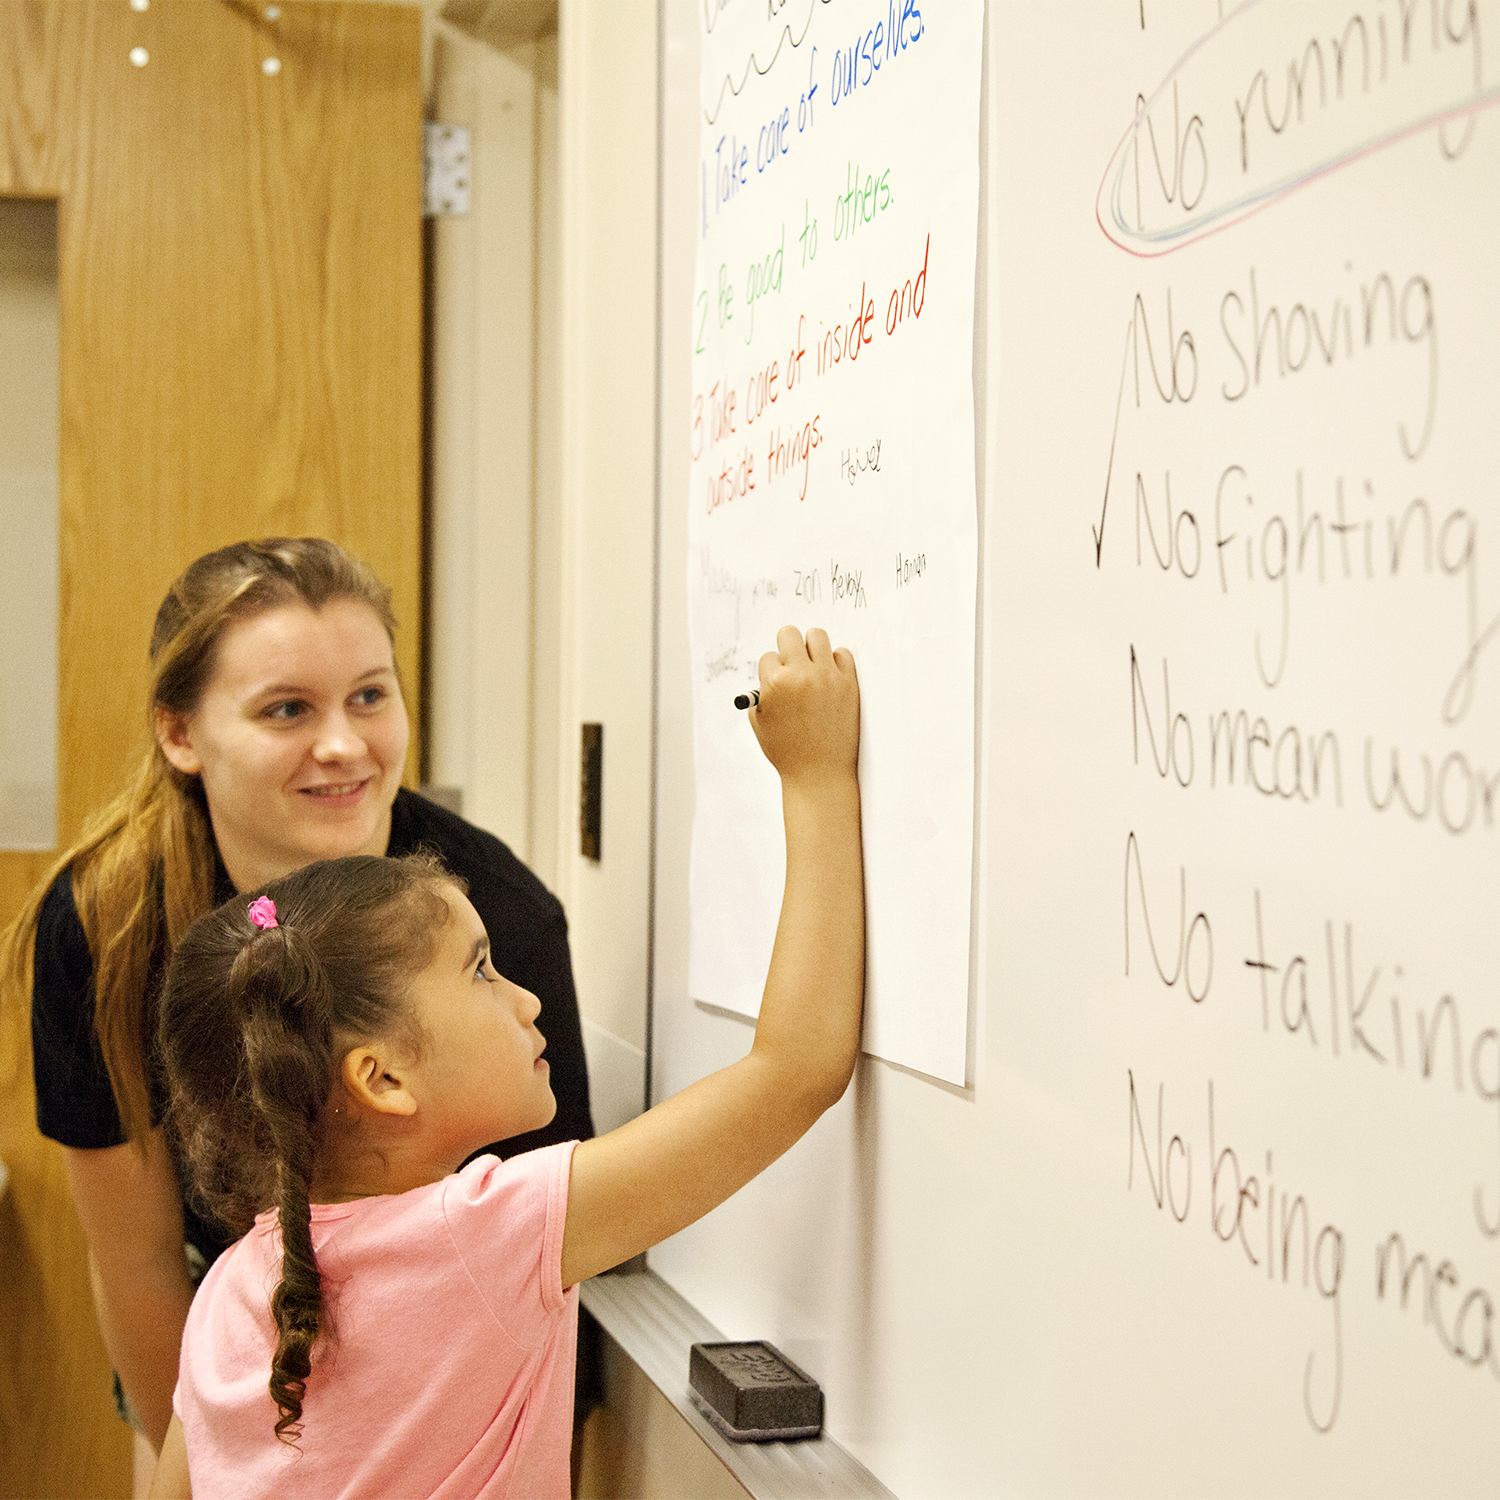 A teacher with a young student writing on the white board.